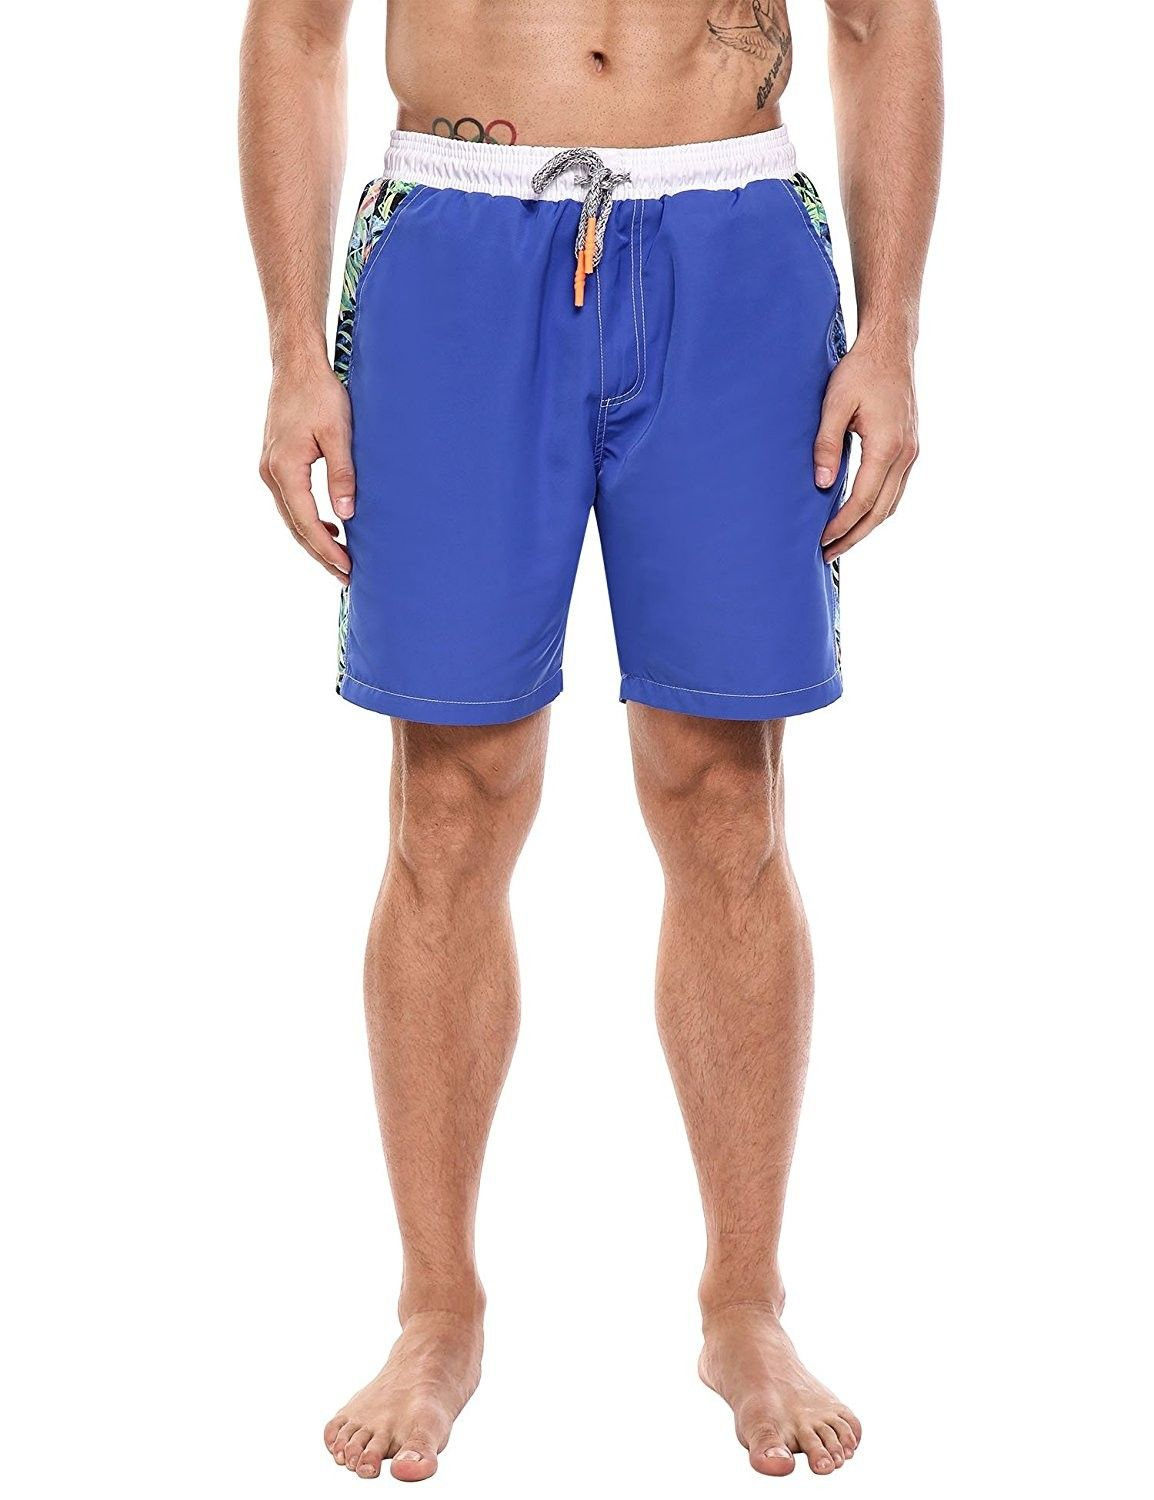 76239c1f2c0 Mens Fashion Broad Shorts Elastic Drawstring Waist Floral Print Beach Swim  Trunk - Type1 - Royal Blue - C6182EZ9I4Z